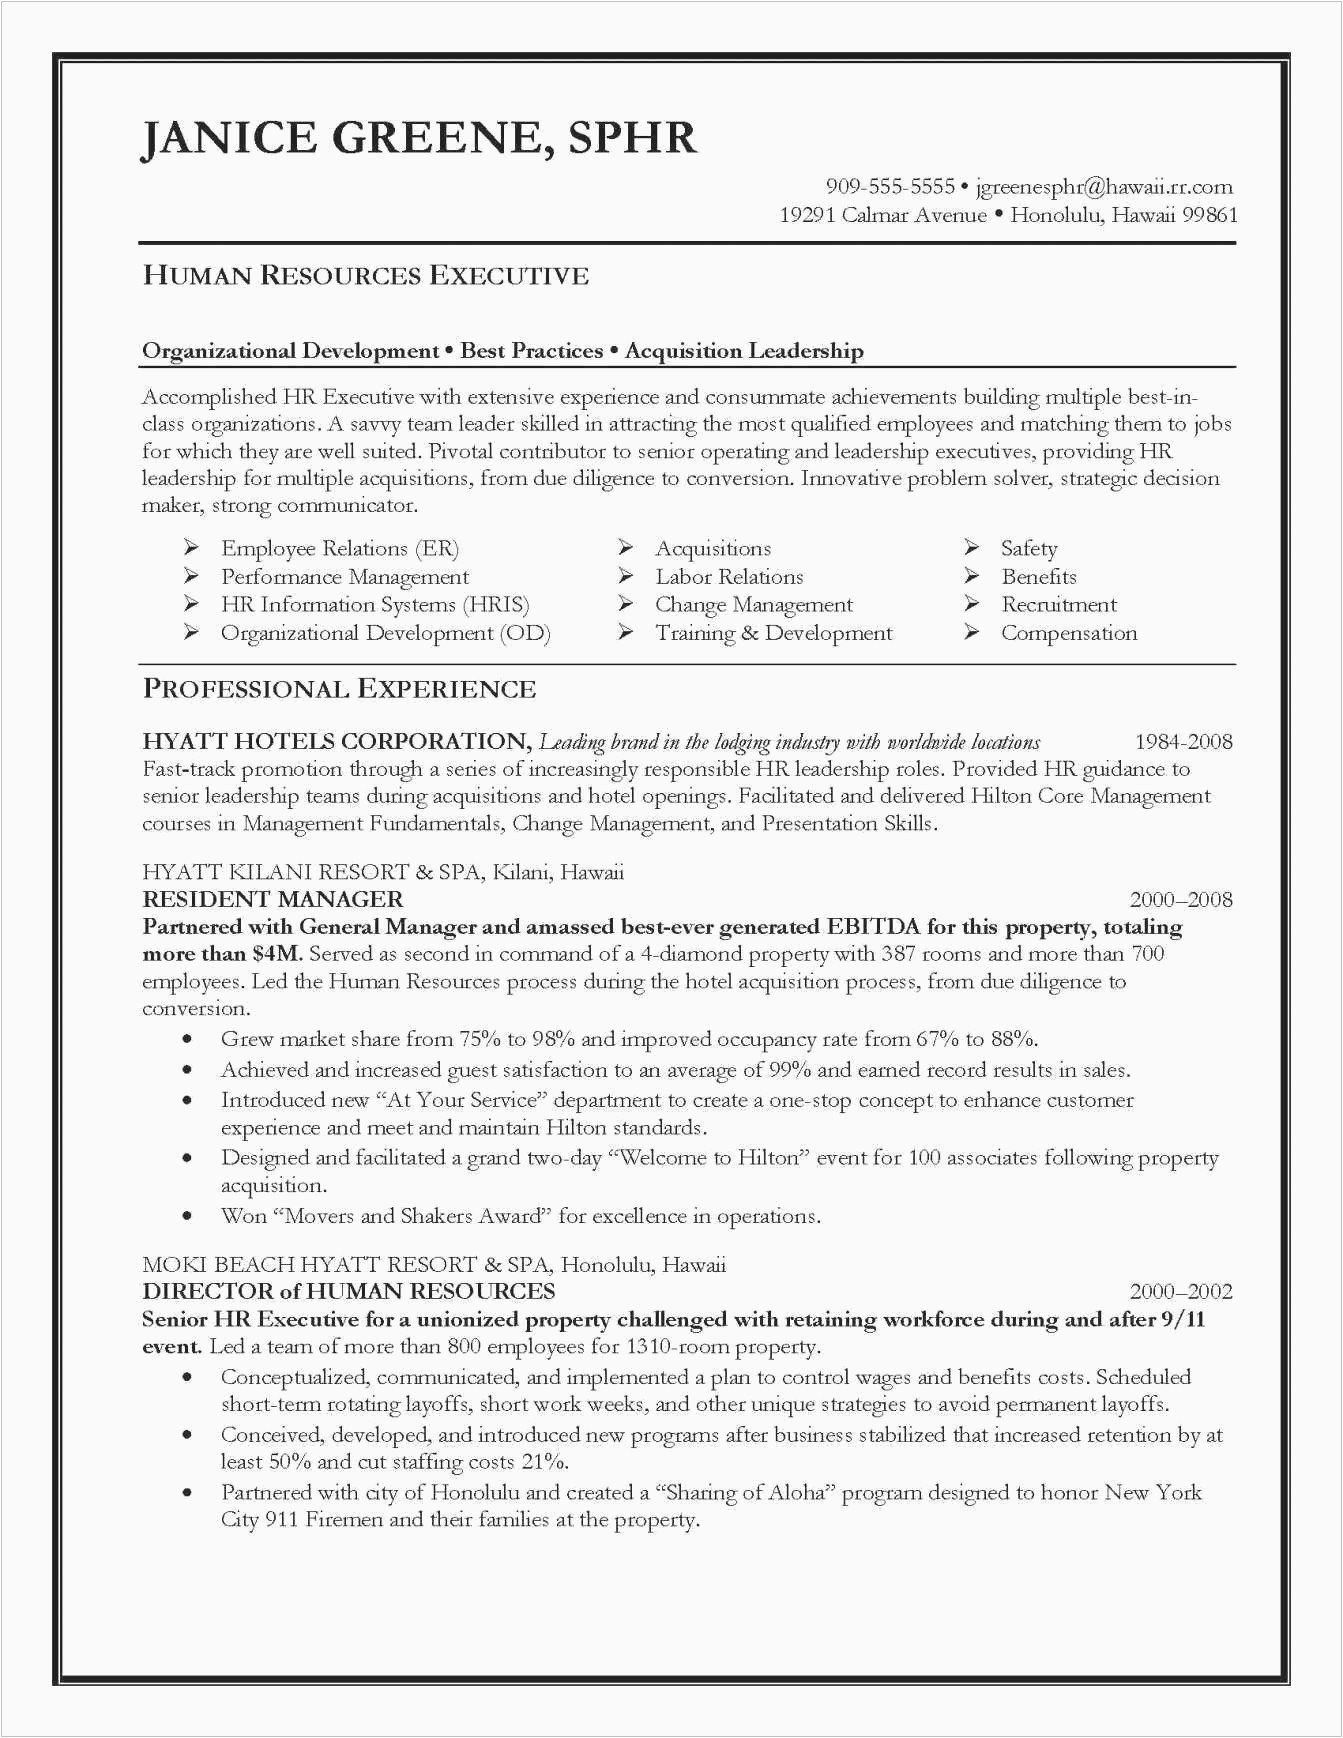 Time management skills resume examples